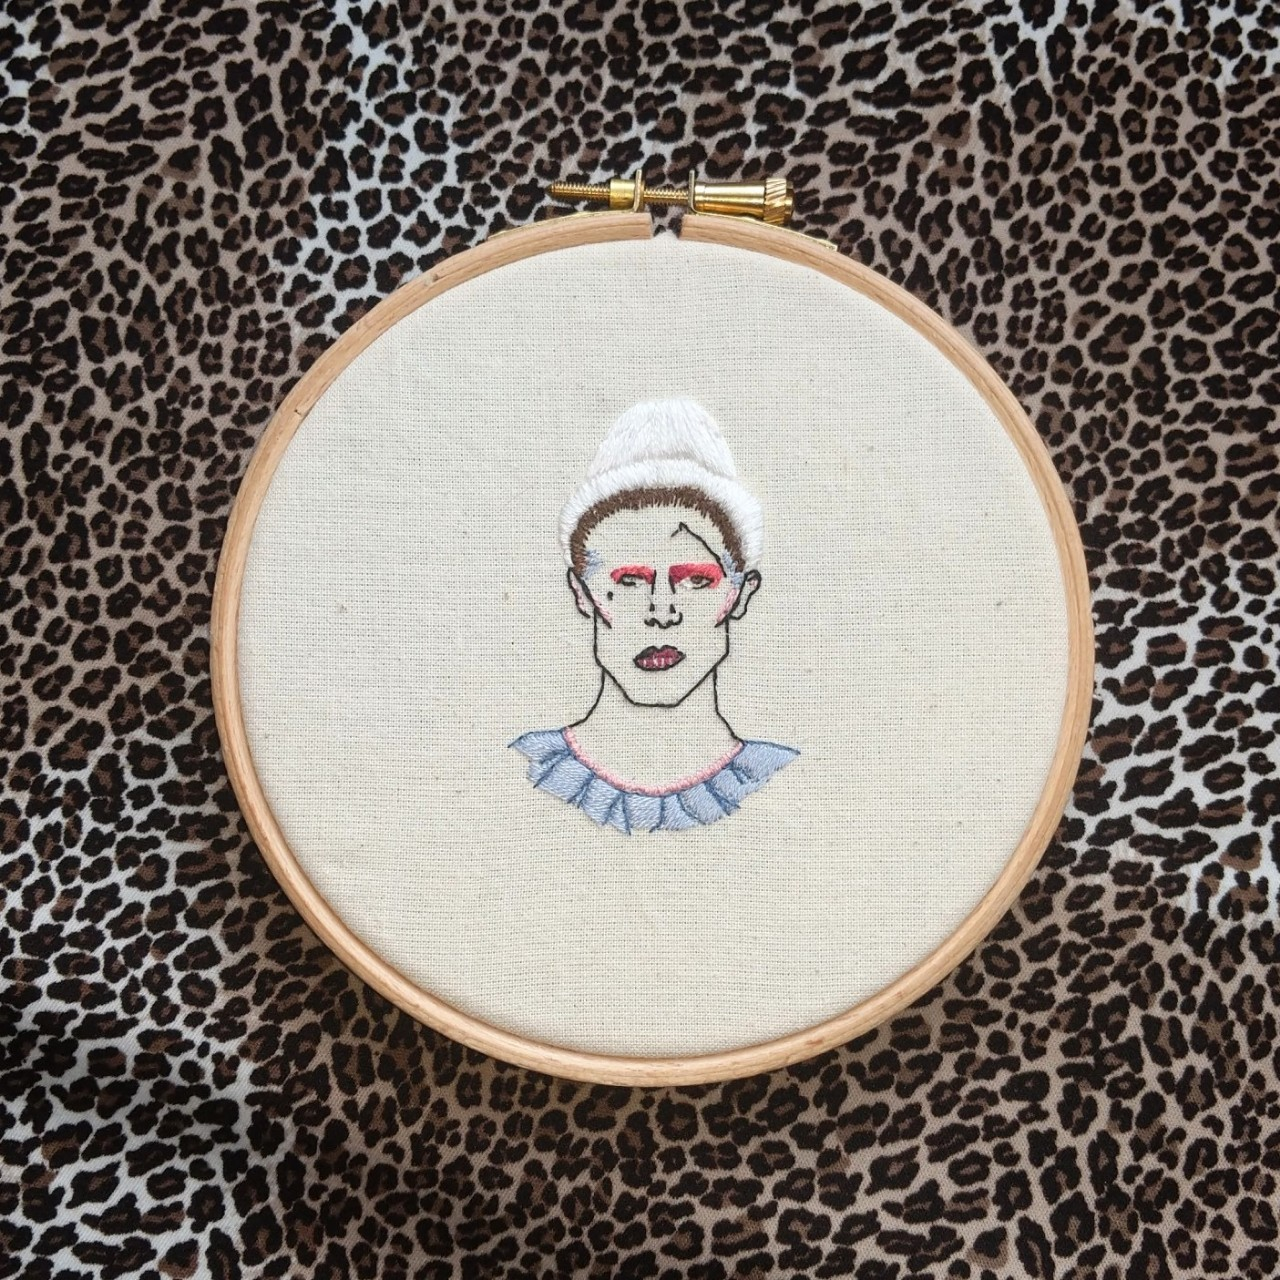 DAVID BOWIE ashes to ashes clown hand embroidery    - Depop